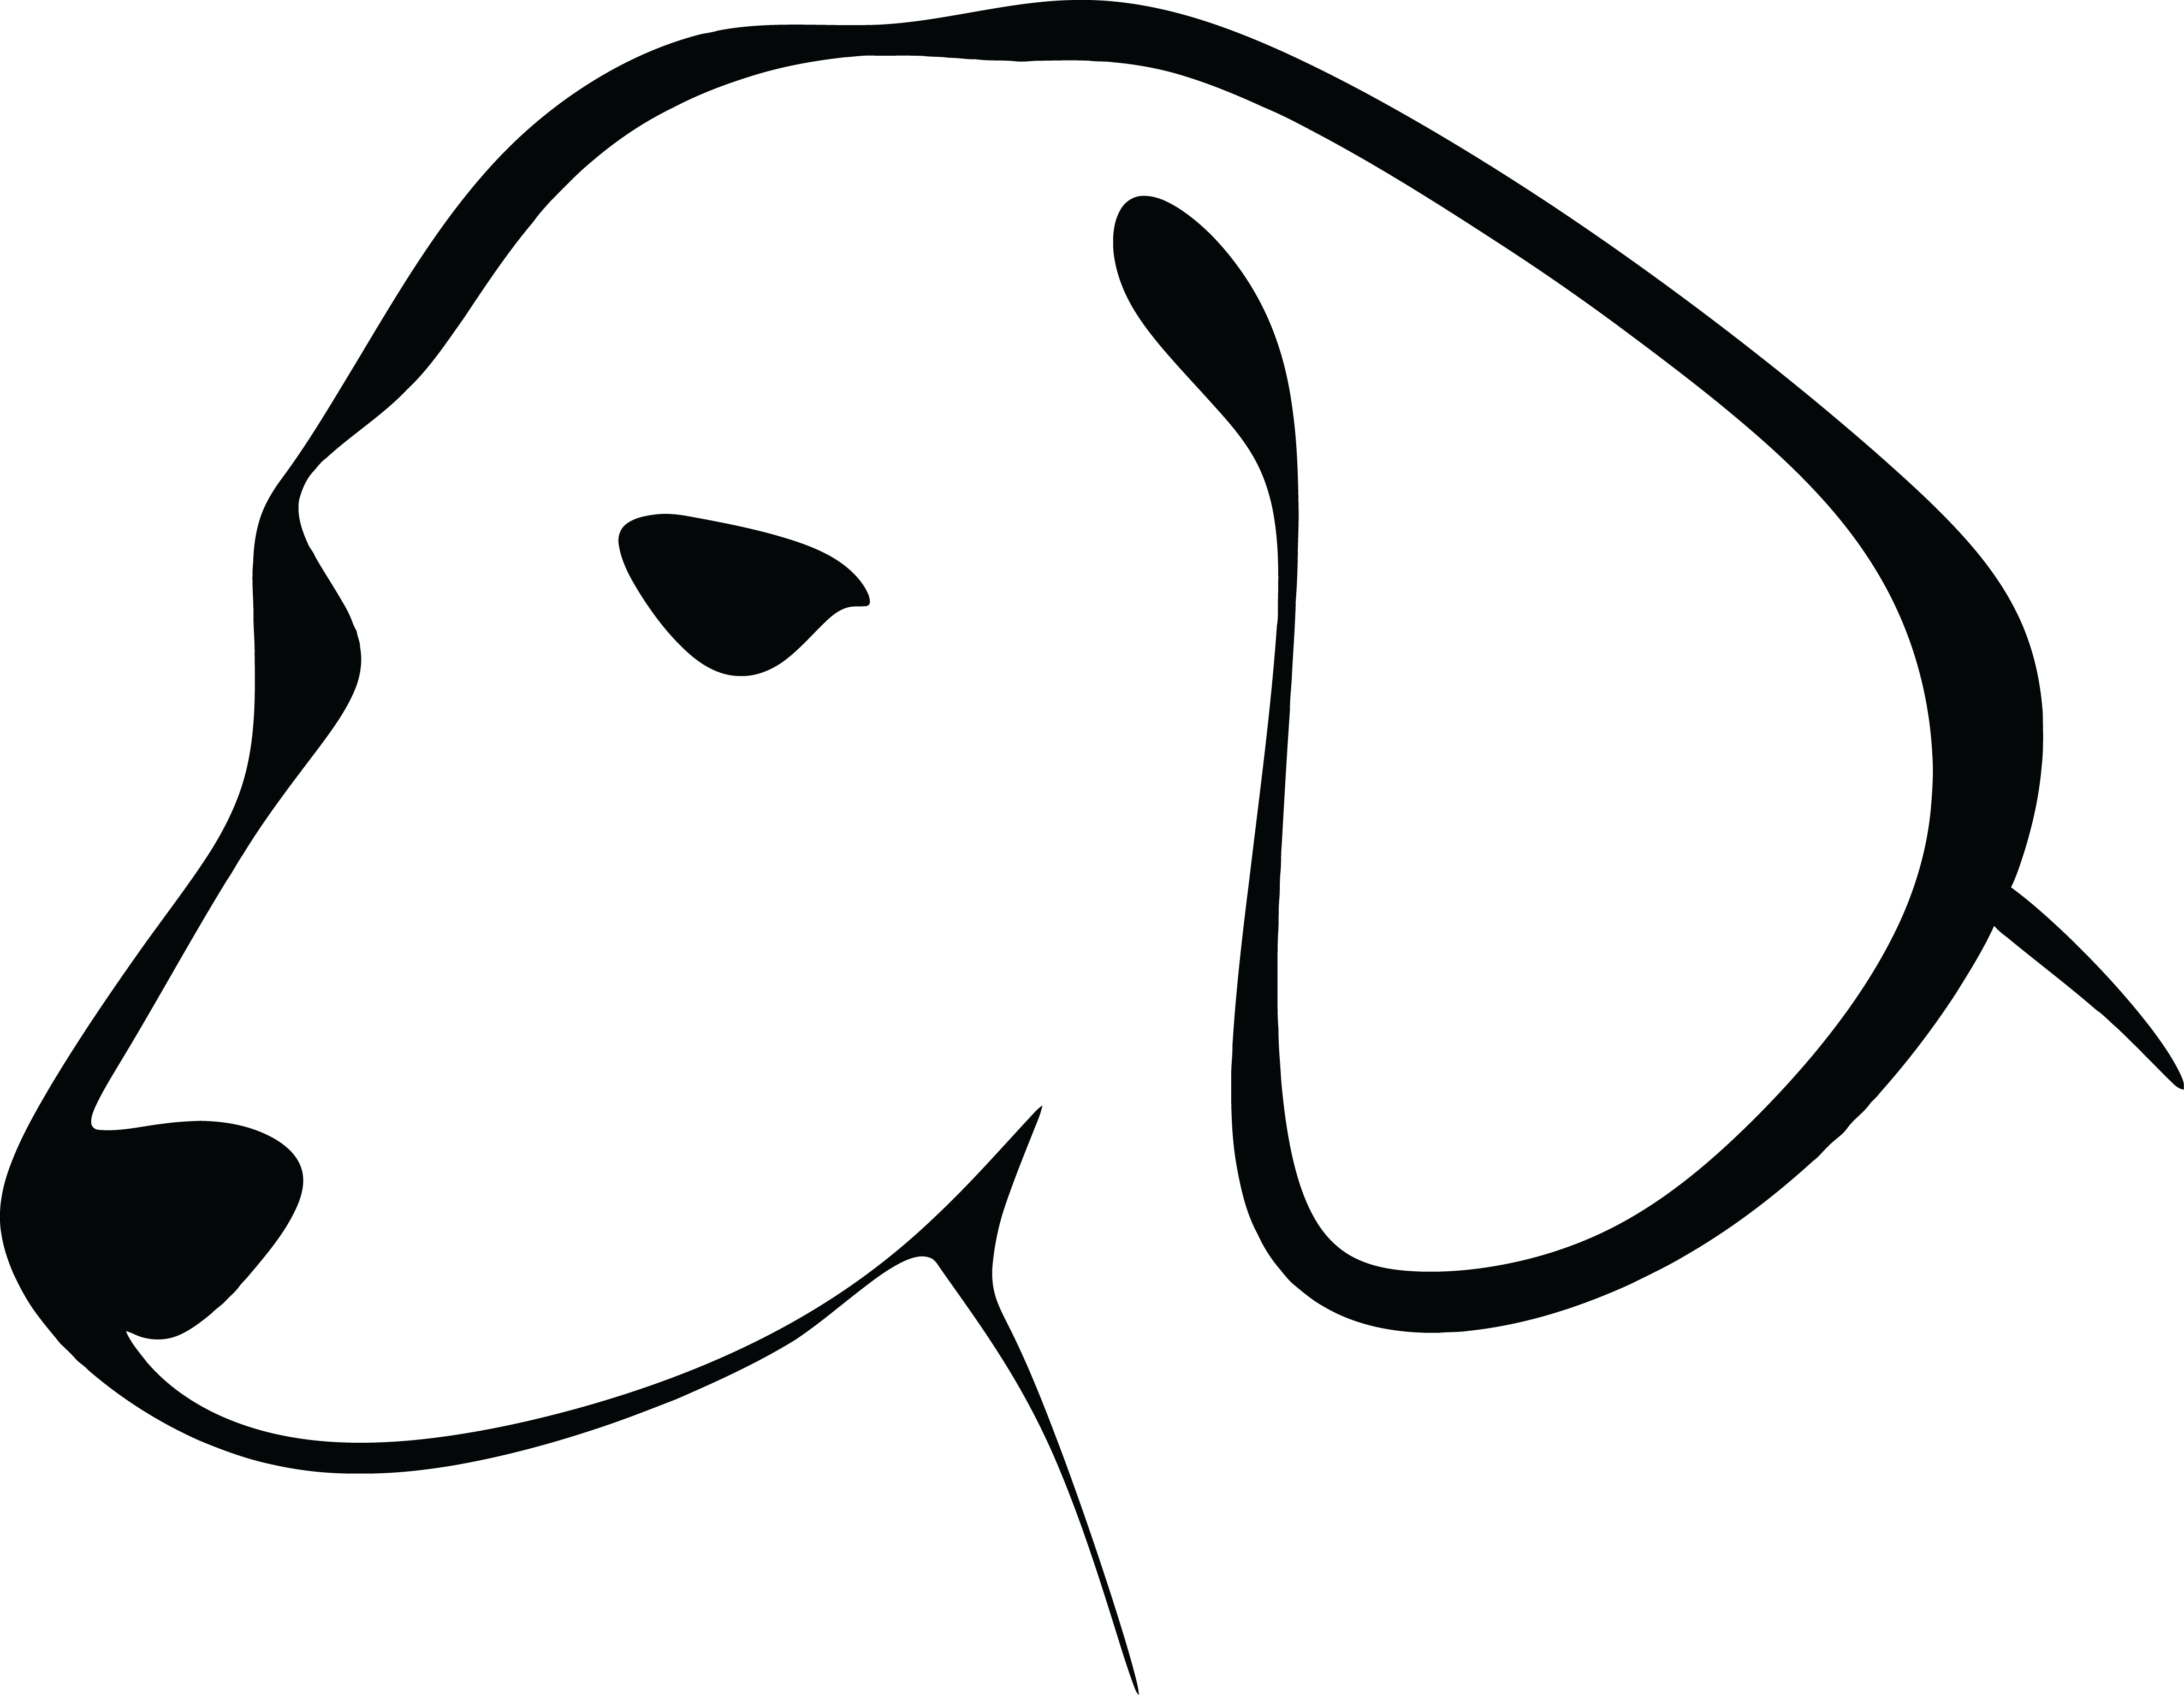 Clipart dog simple. Free black and white